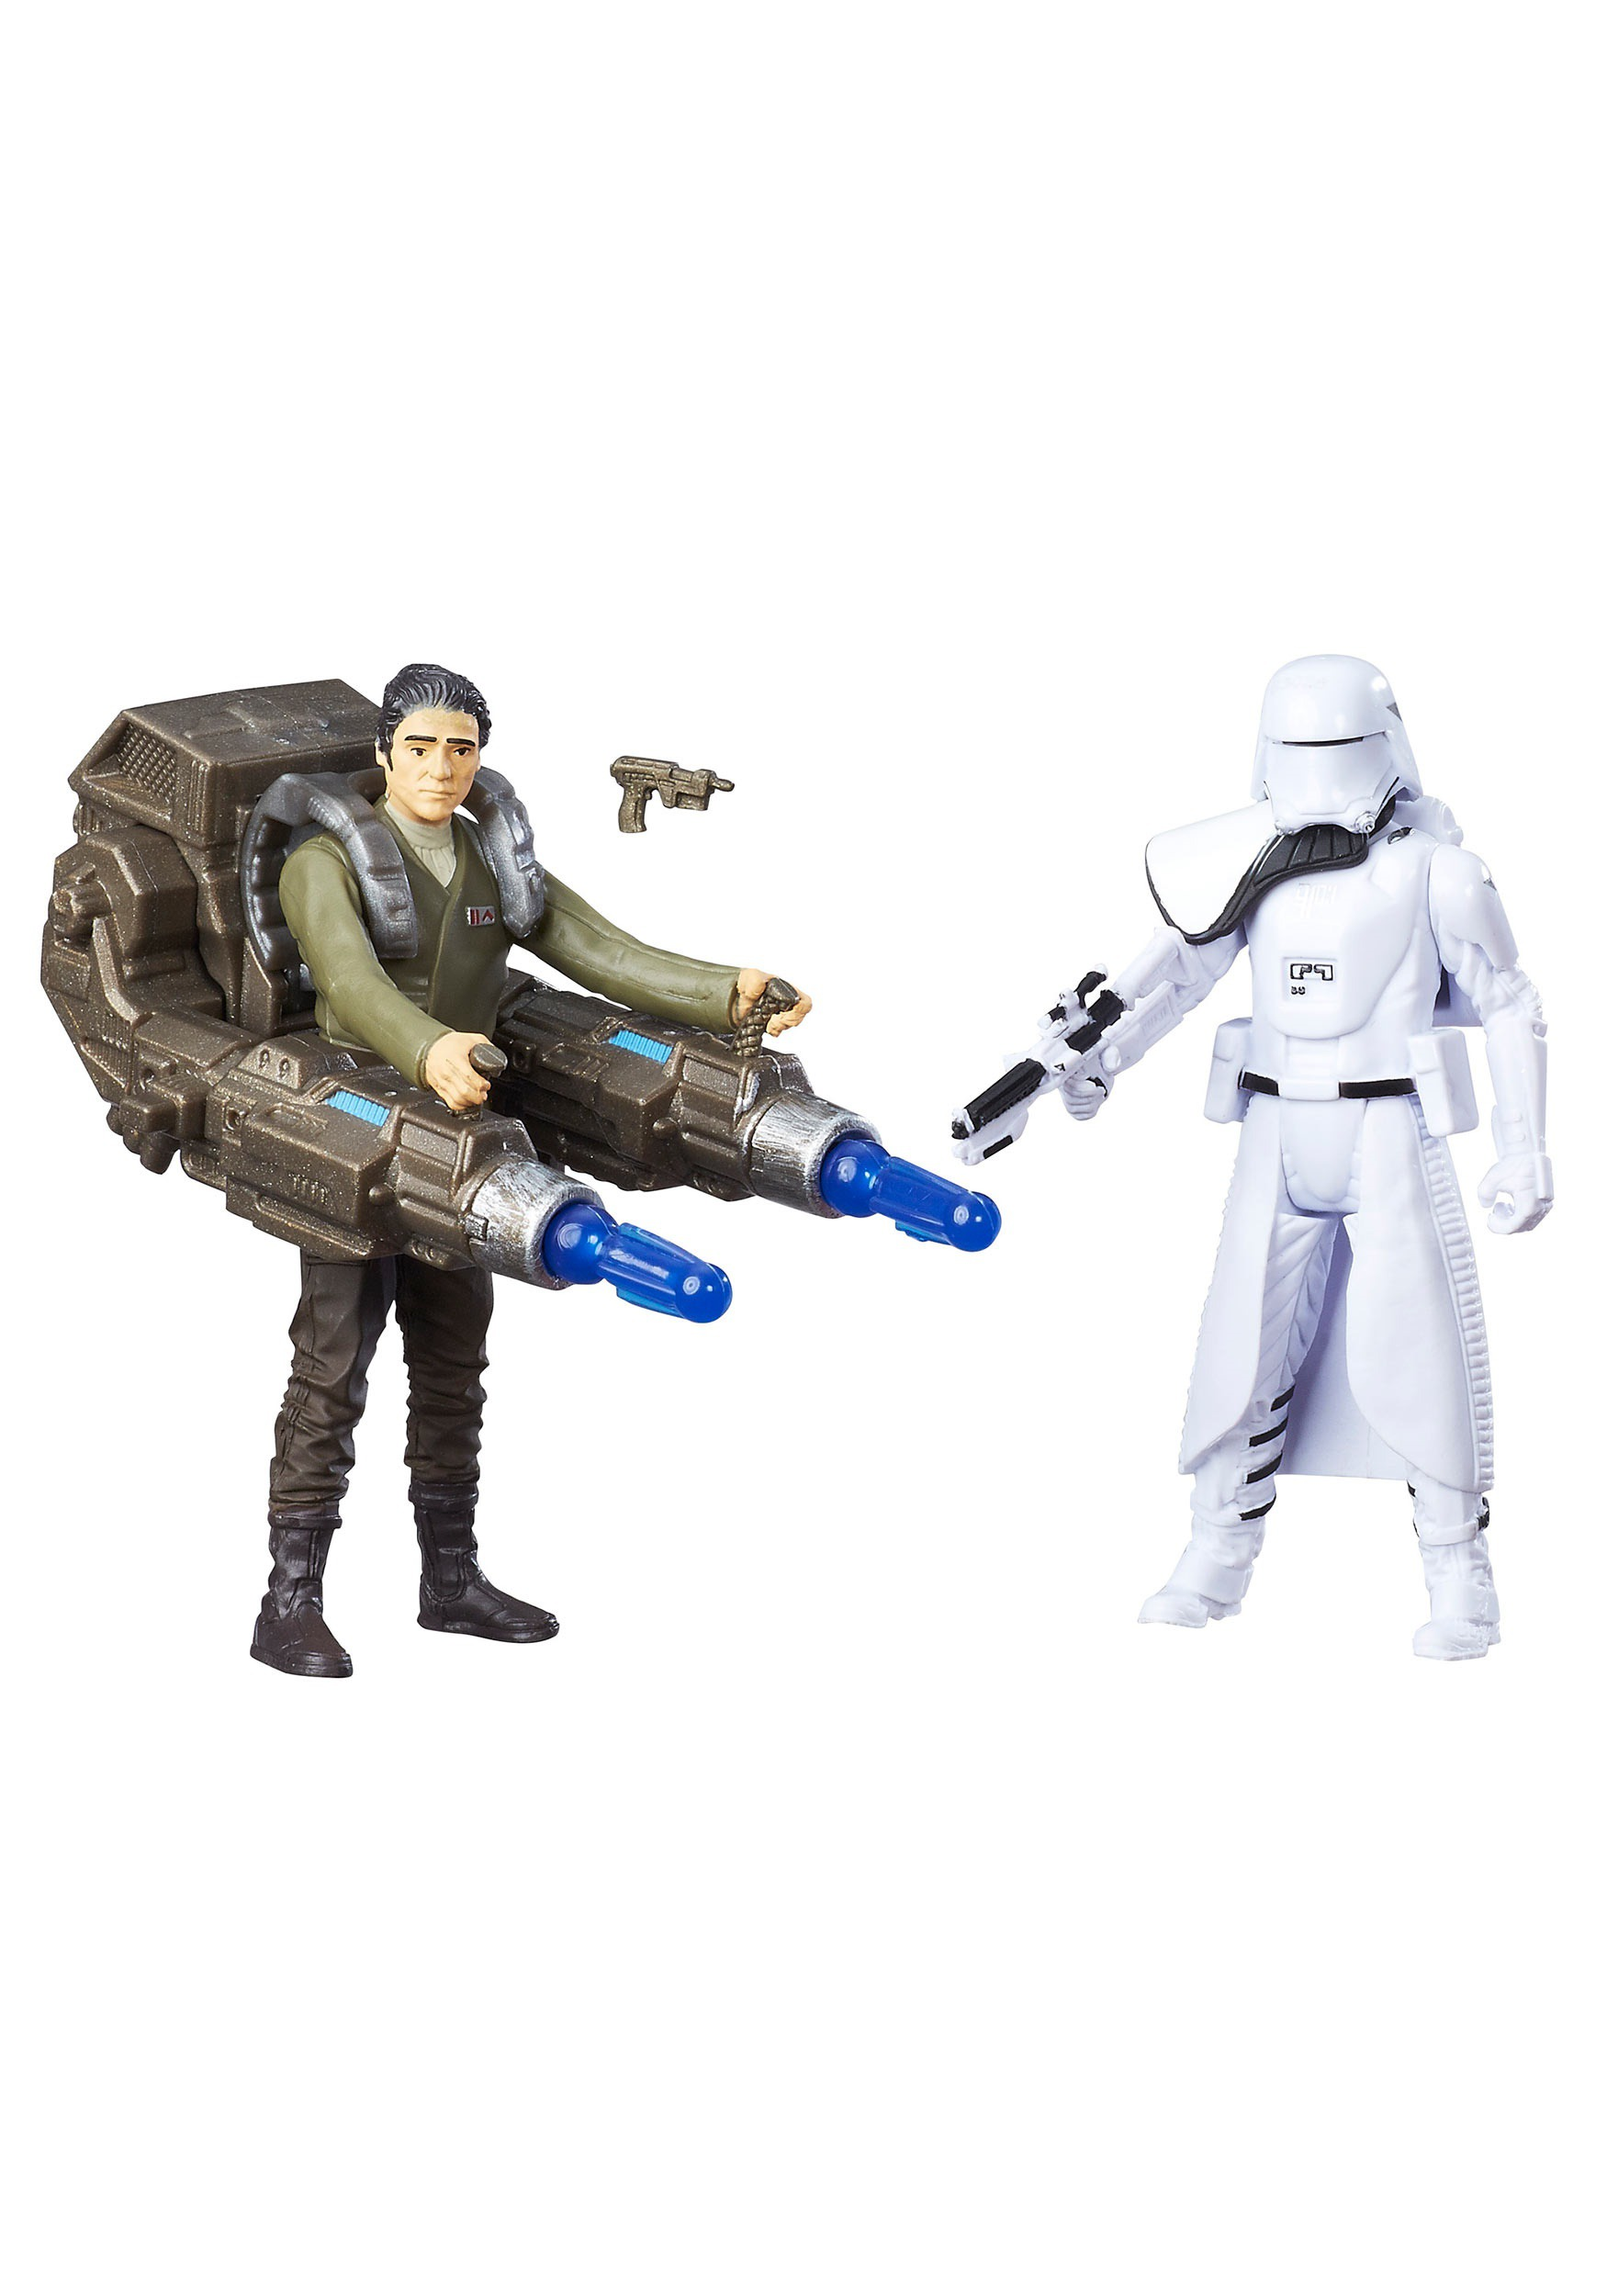 Star Wars Ep 7 Snowtrooper Officer/ Poe Dameron Figures EEDB8612AS00